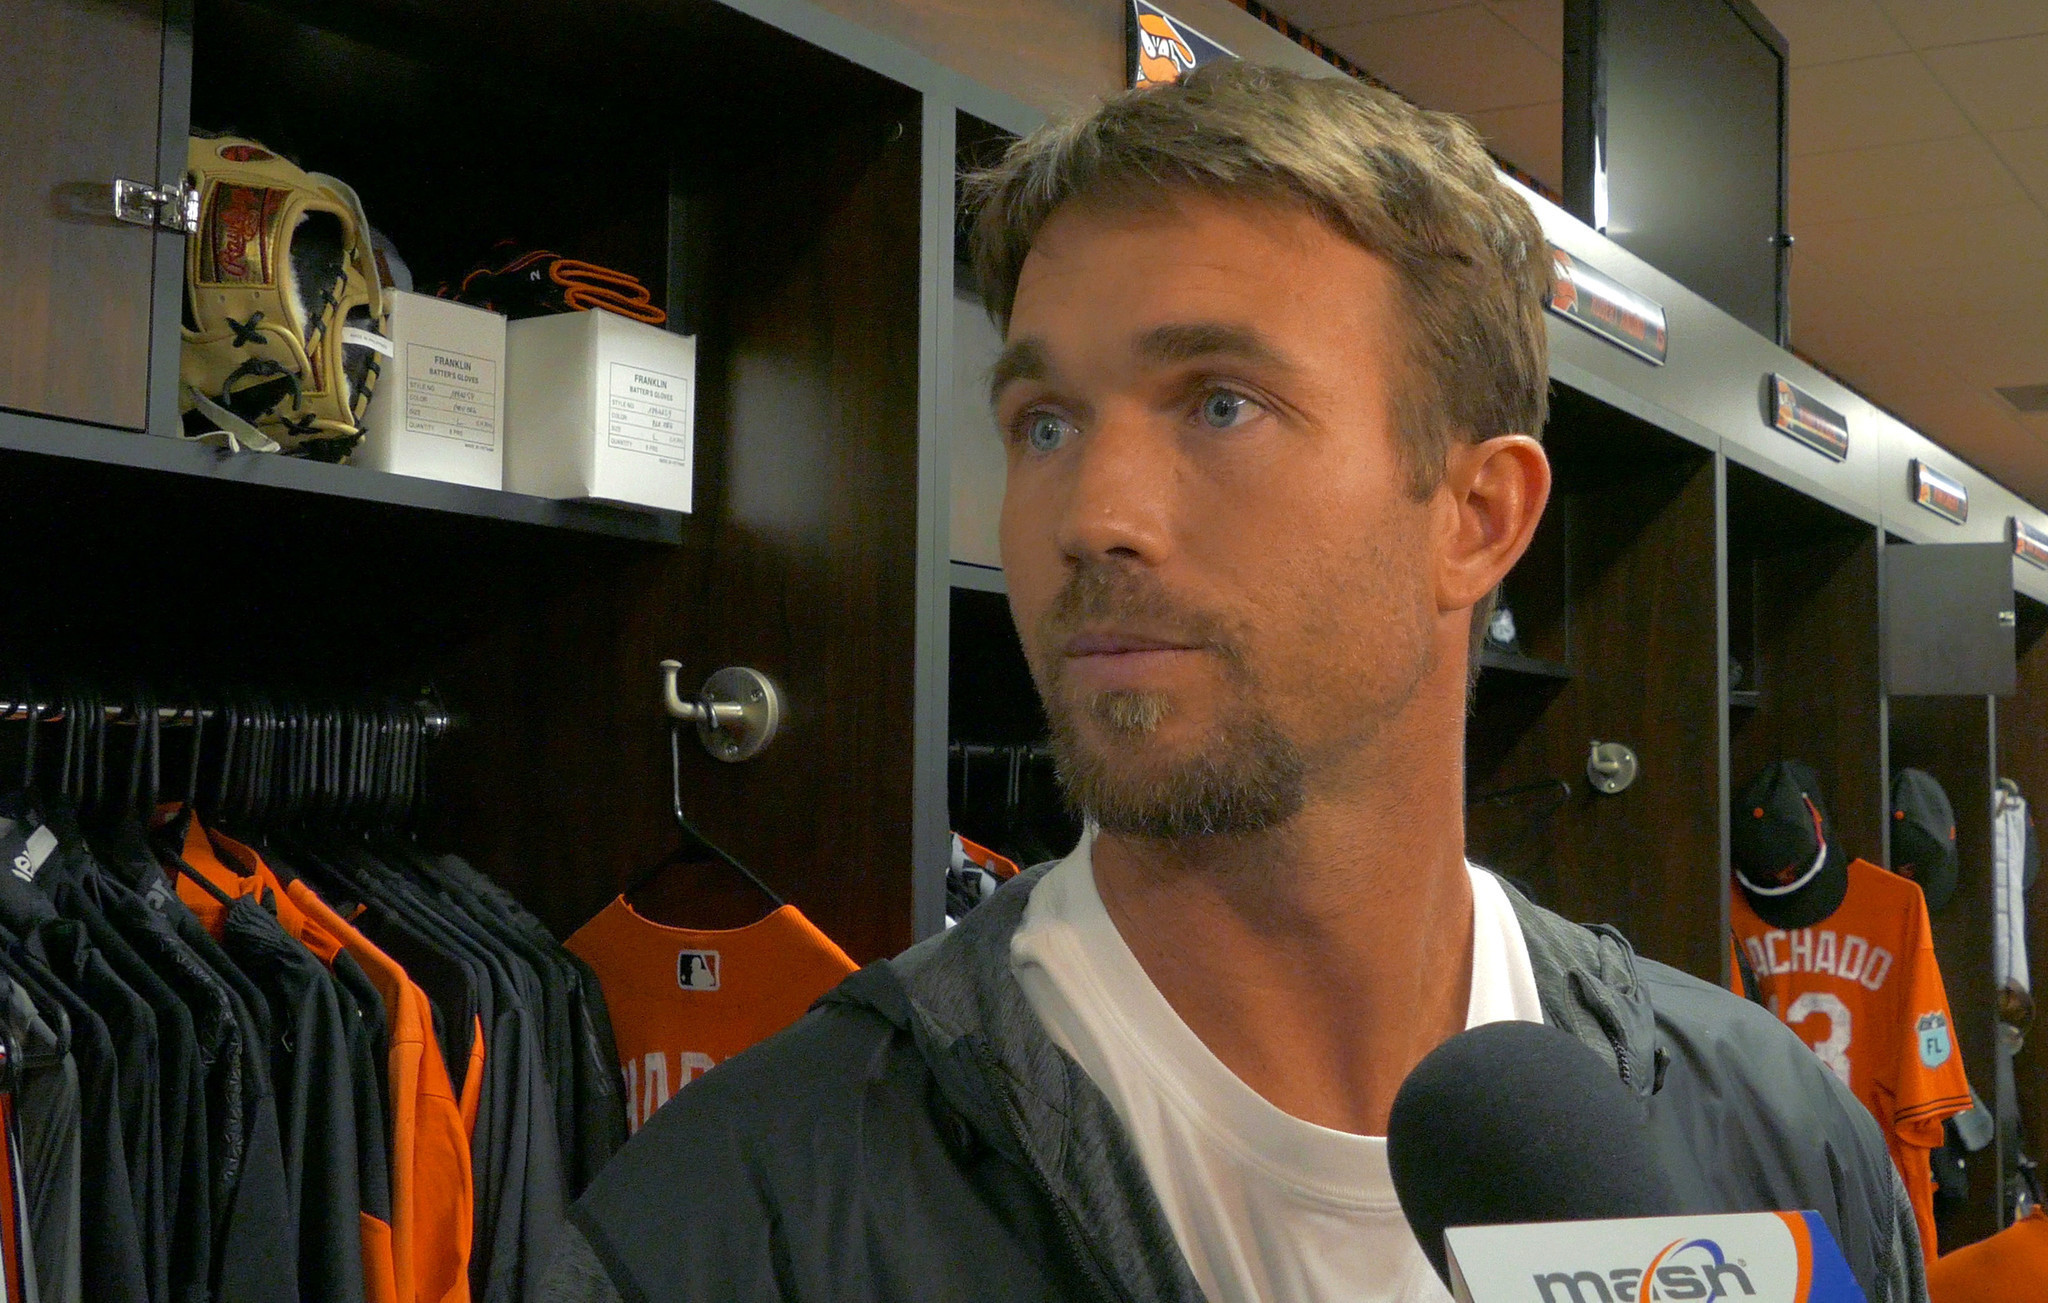 Bal-orioles-receive-good-news-on-last-round-of-tests-on-j-j-hardy-s-ailing-back-20170218